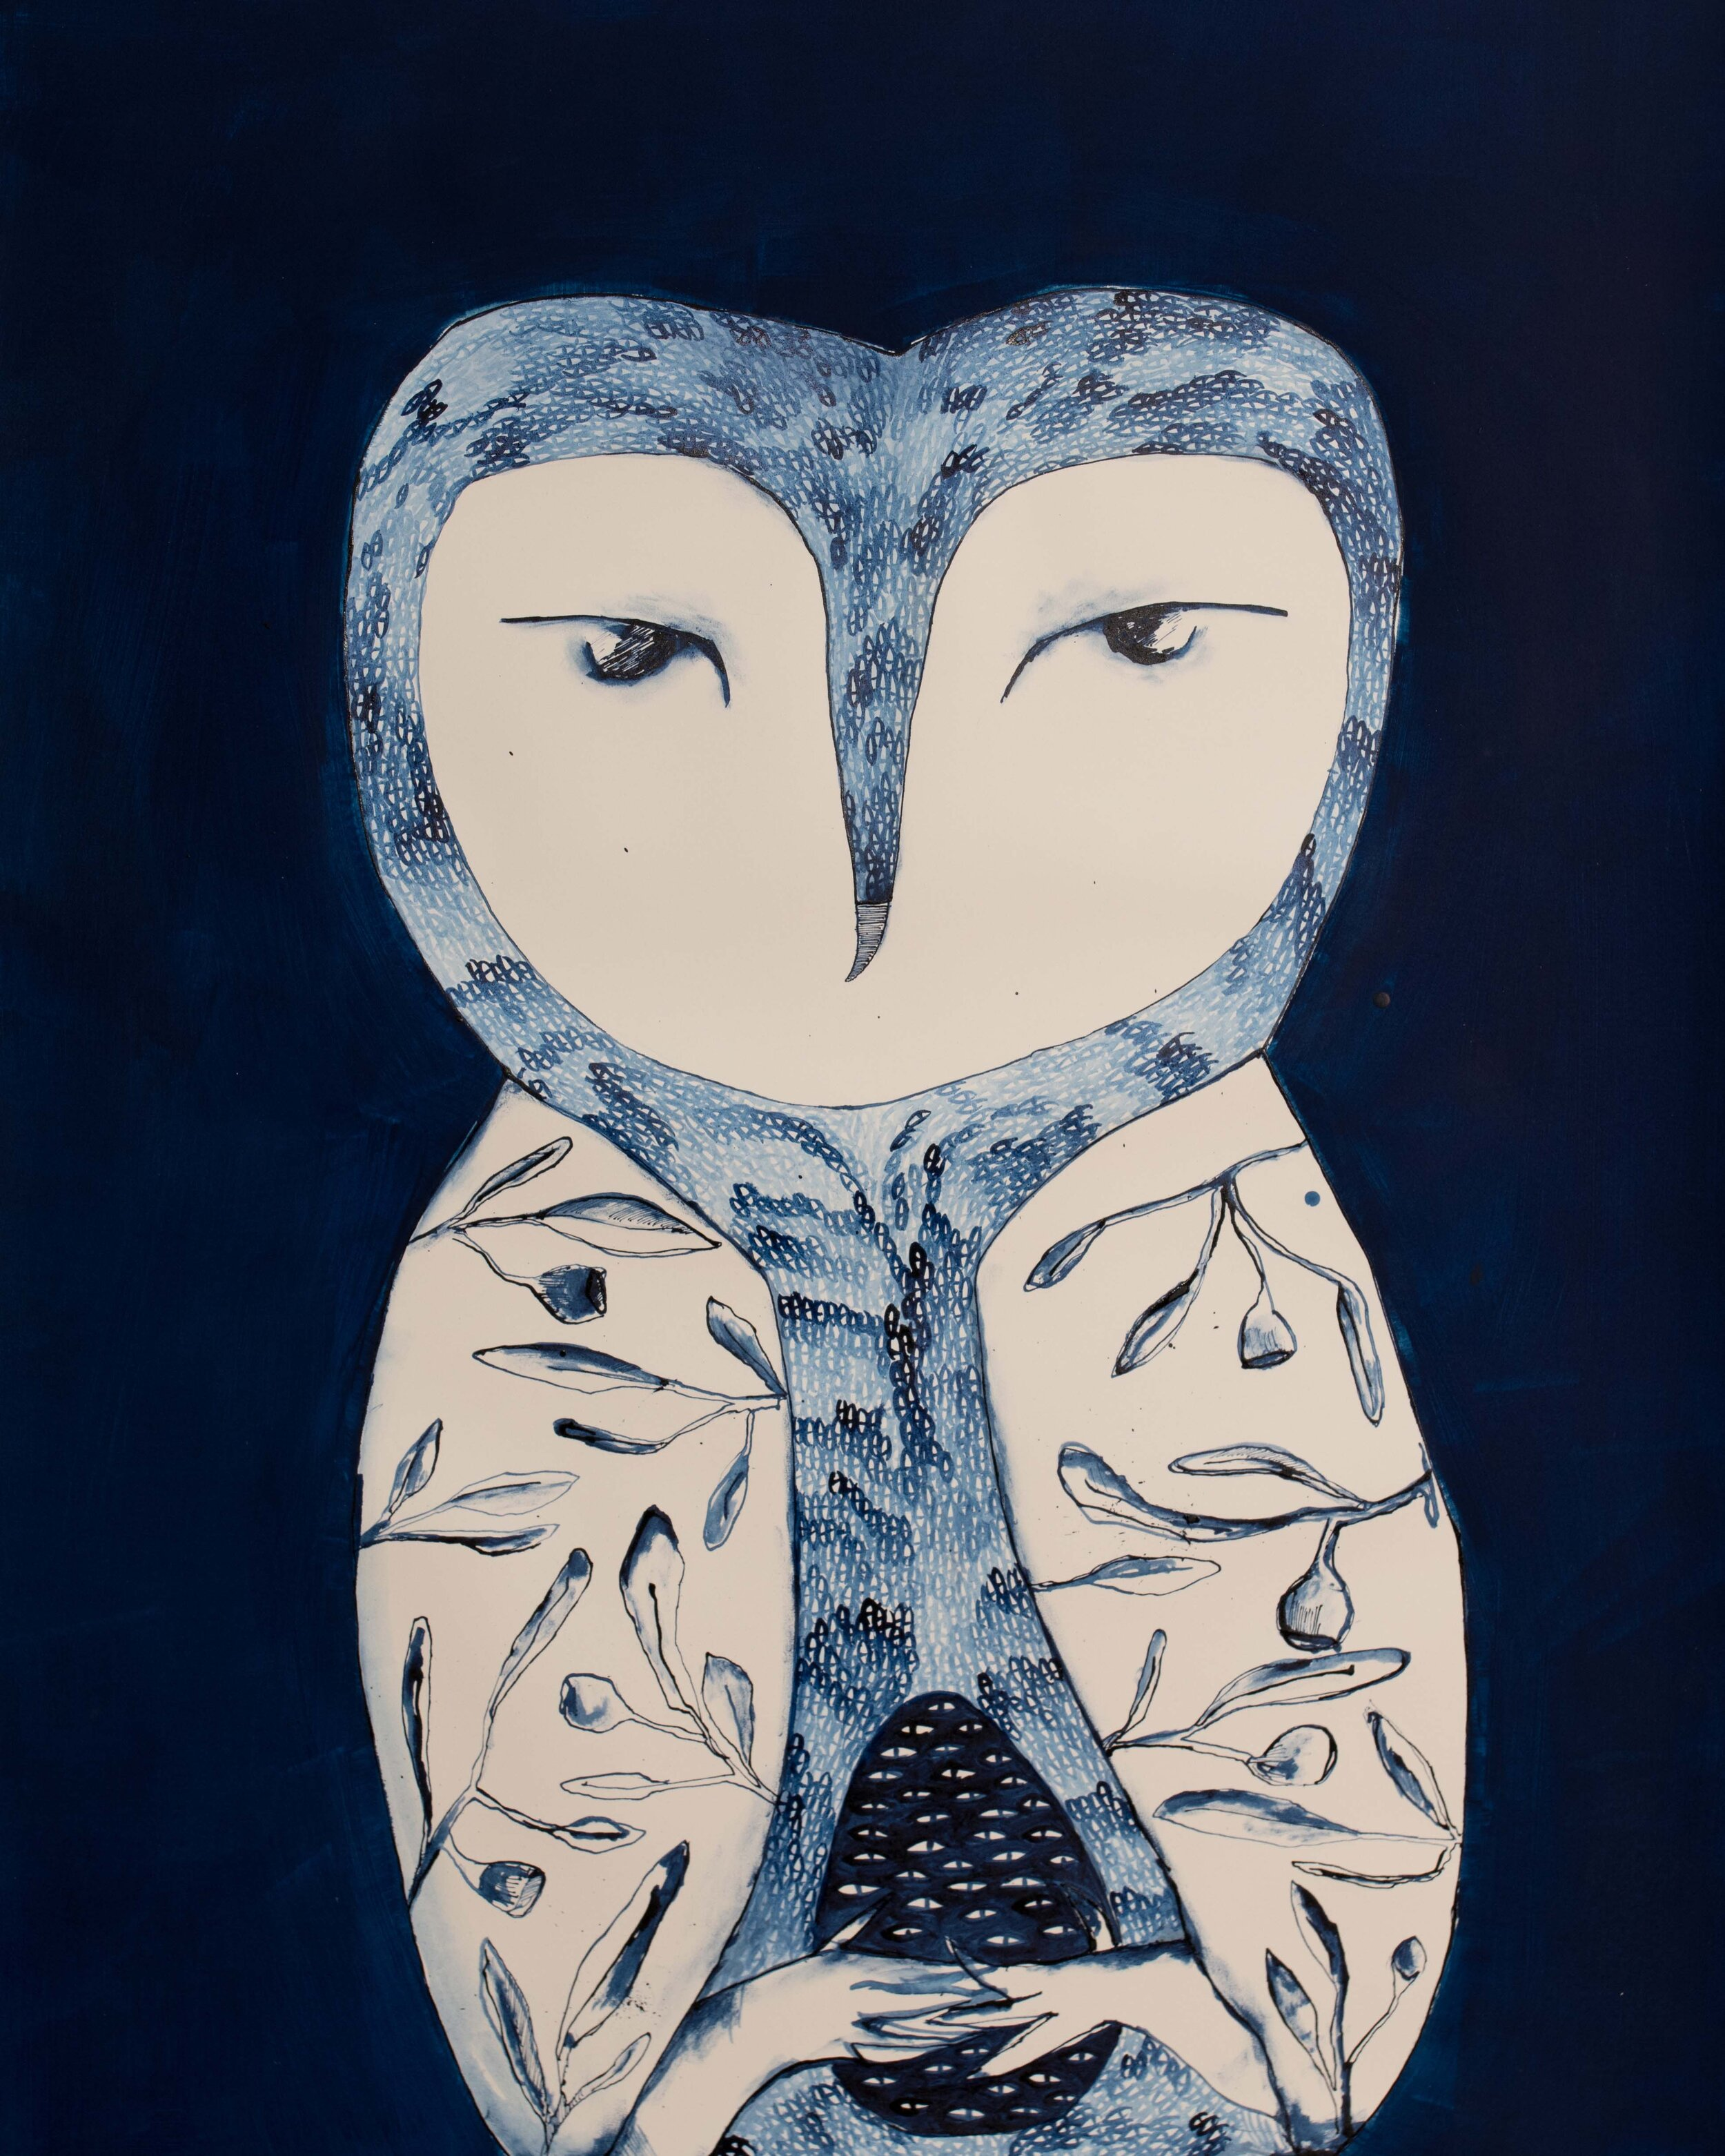 Bertie Blackman, Owl of Eucalypt 56cm x 85cm. gouache, watercolour, shellac ink, gesso on 300 gsm French cotton rag paper, framed, available